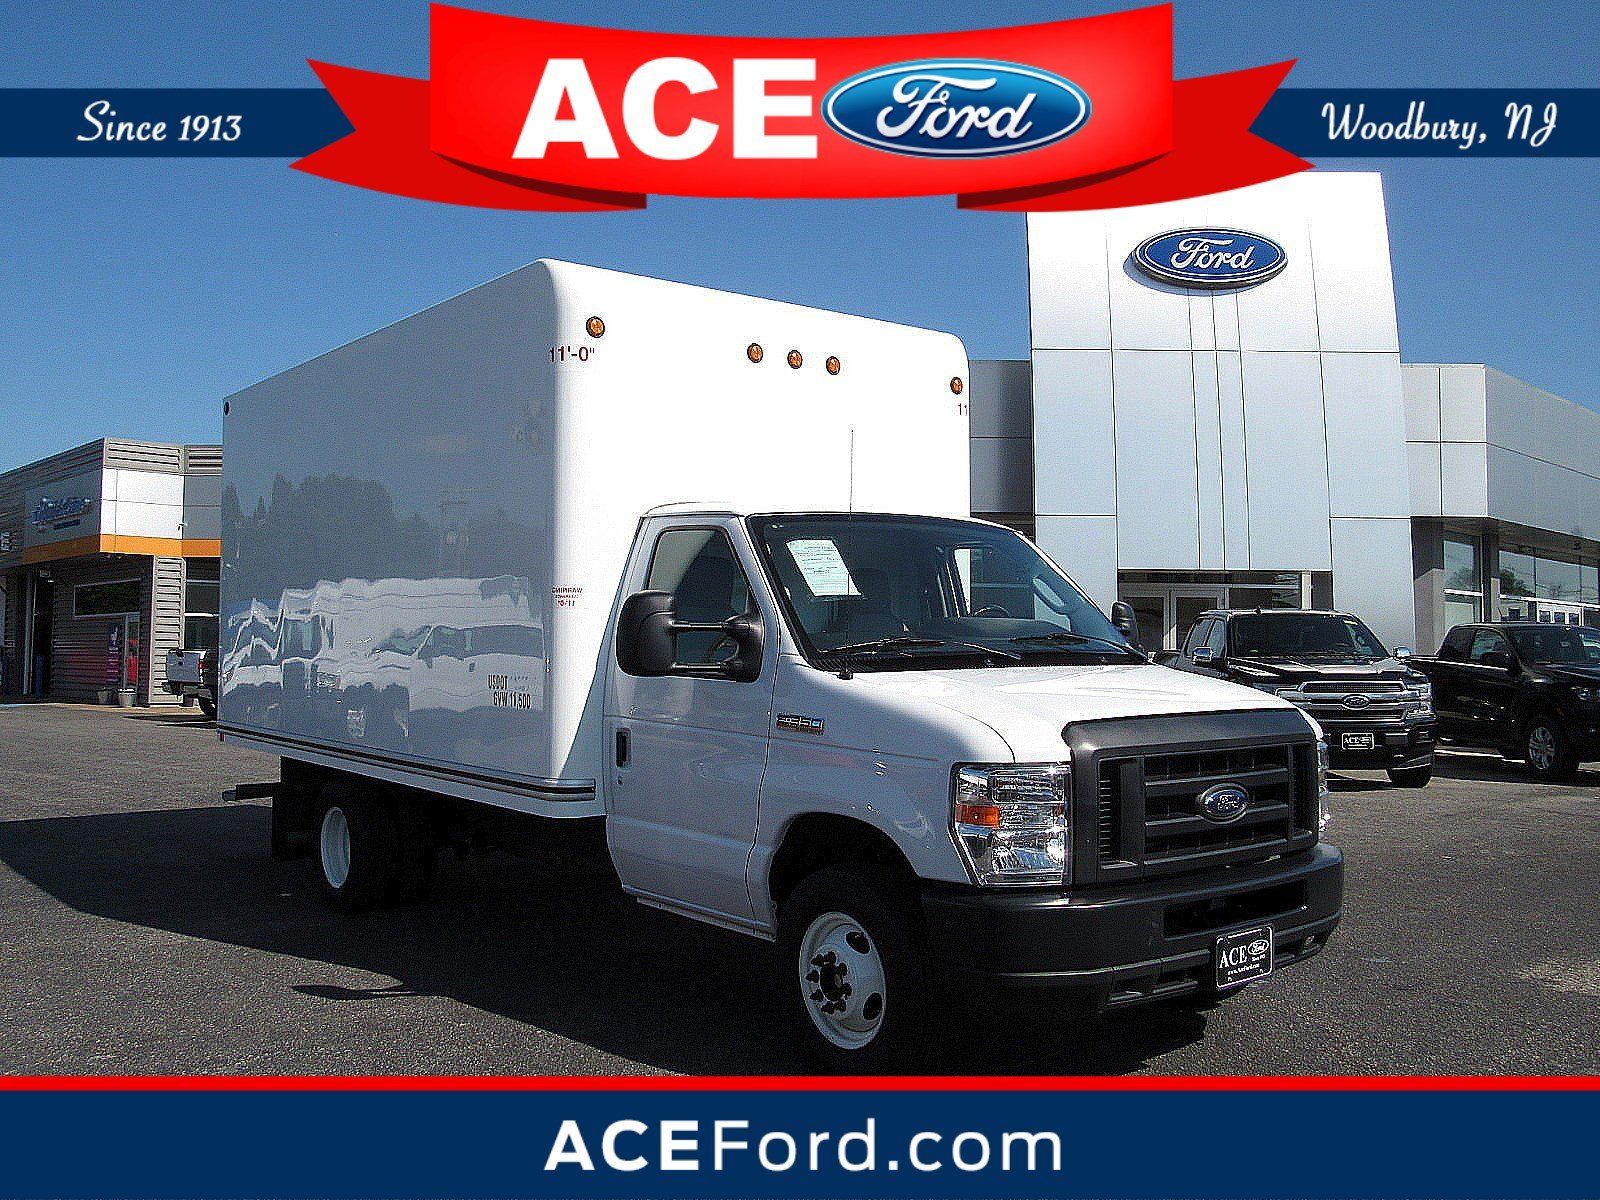 Used 2019 Ford Econoline 350 Cutaway For Sale at Ace Ford